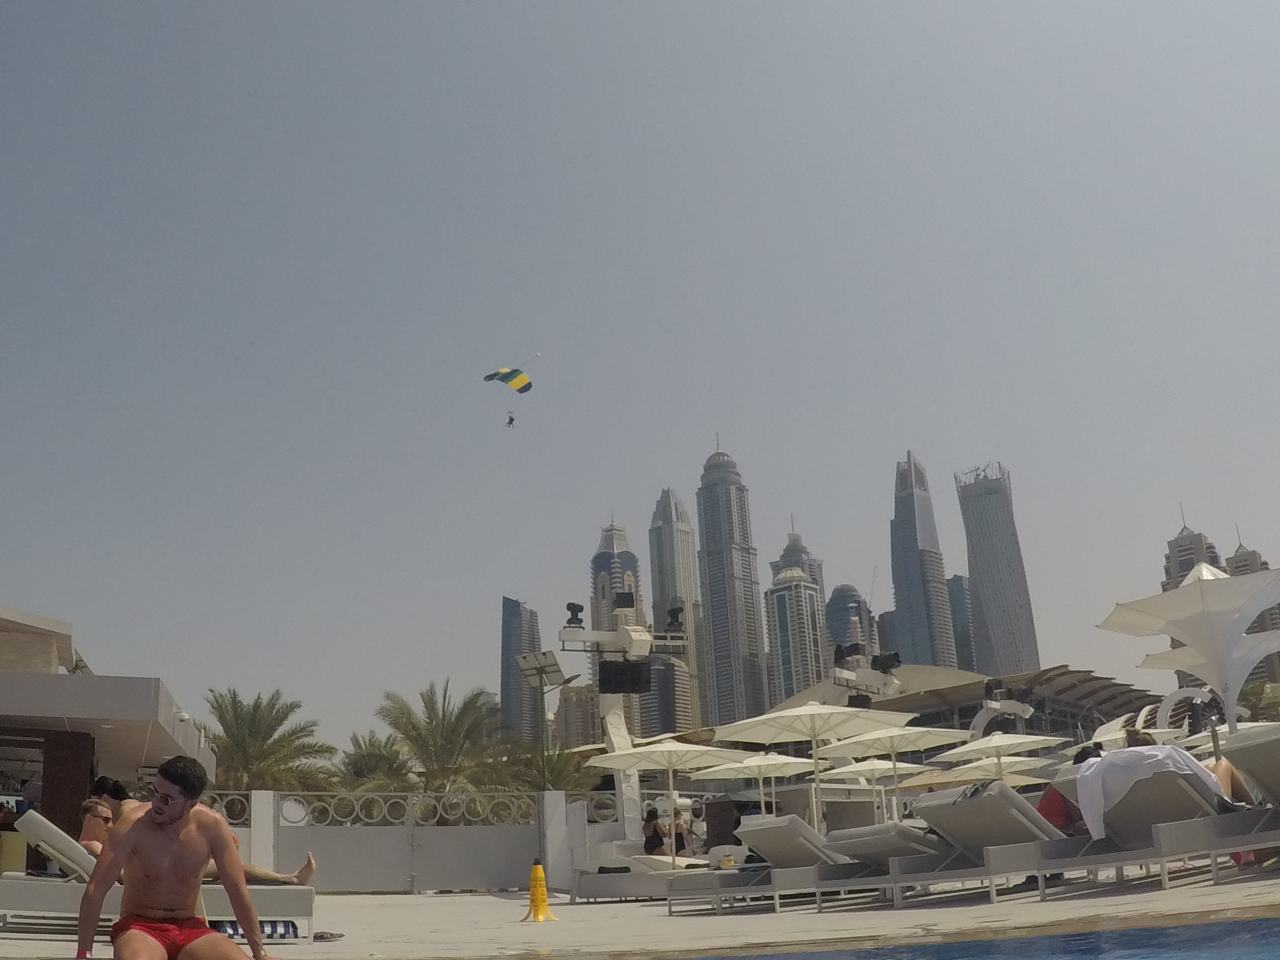 Skydivers zero gravity Dubai